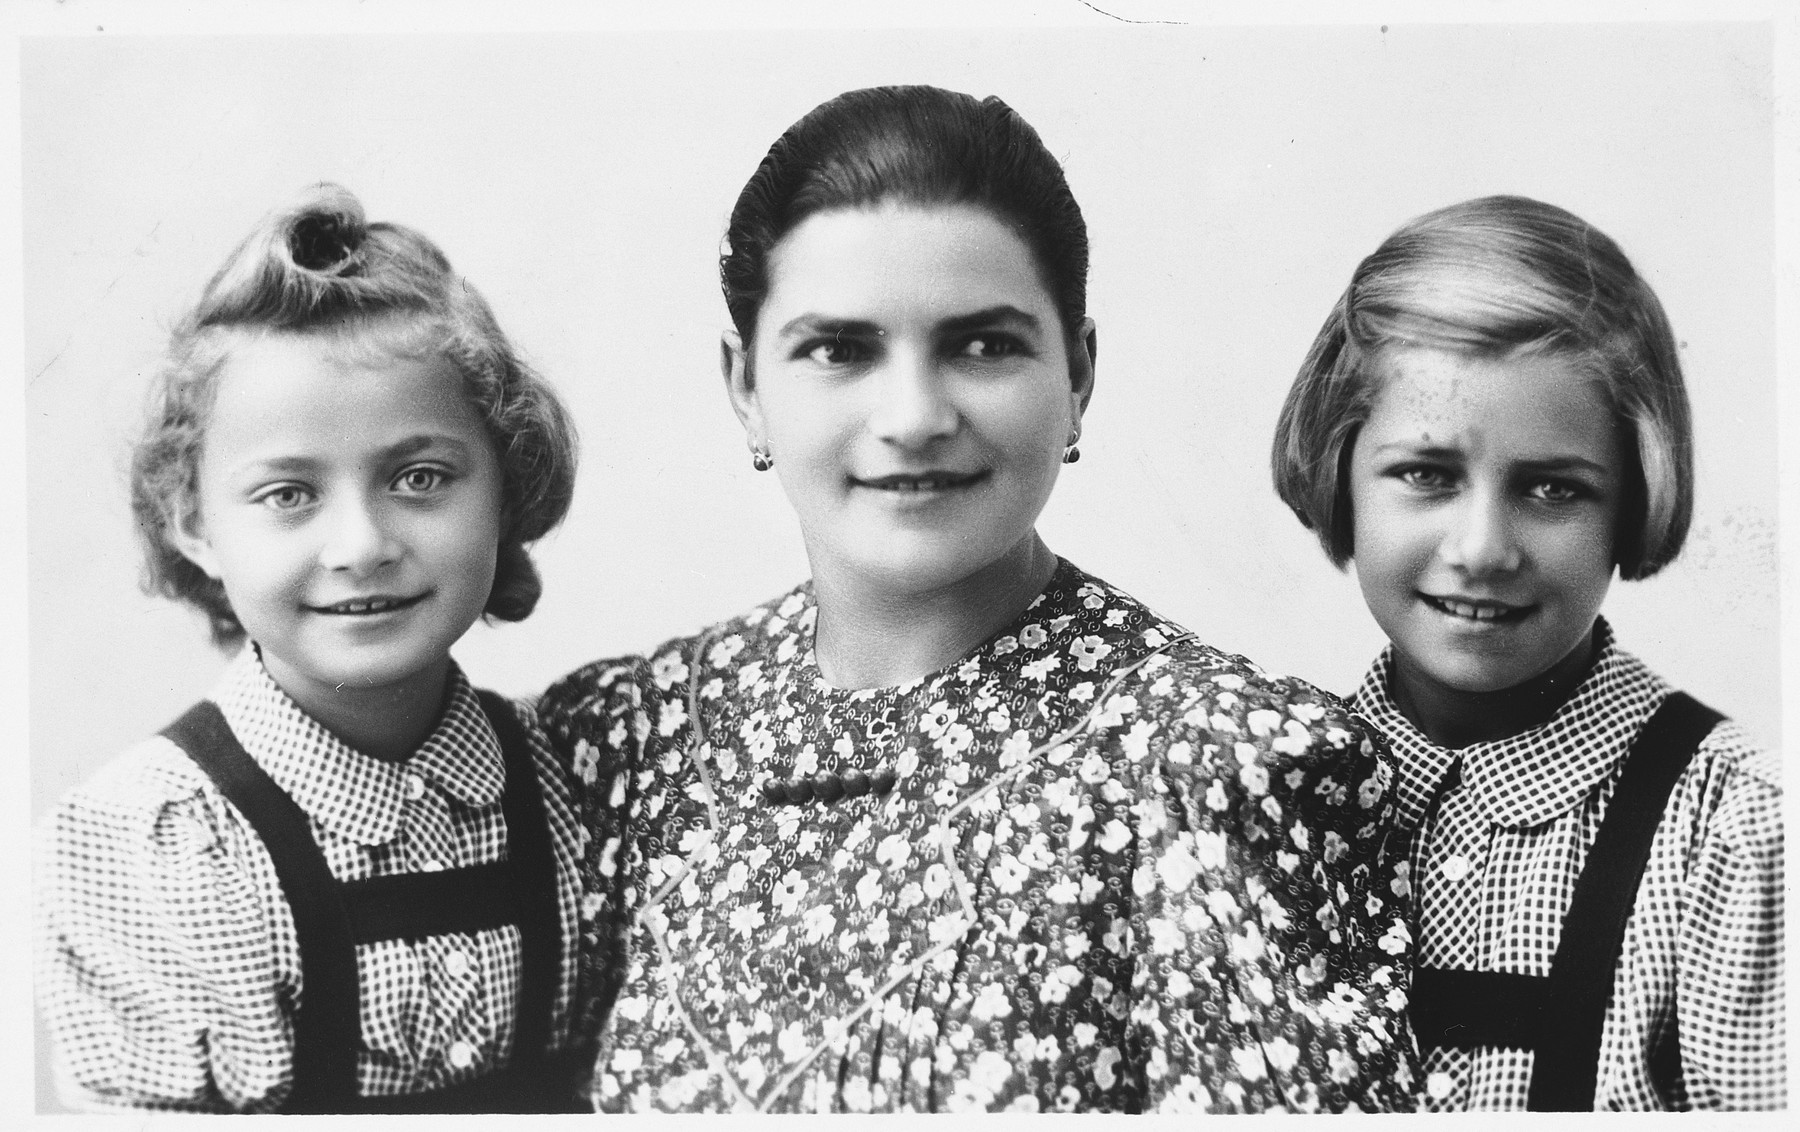 Studio portrait of a Jewish mother and her two children in Holice, Czechoslovakia.  Pictured are Etelka (Meisels) Frei and her two daughters, Gabriella and Katerina.